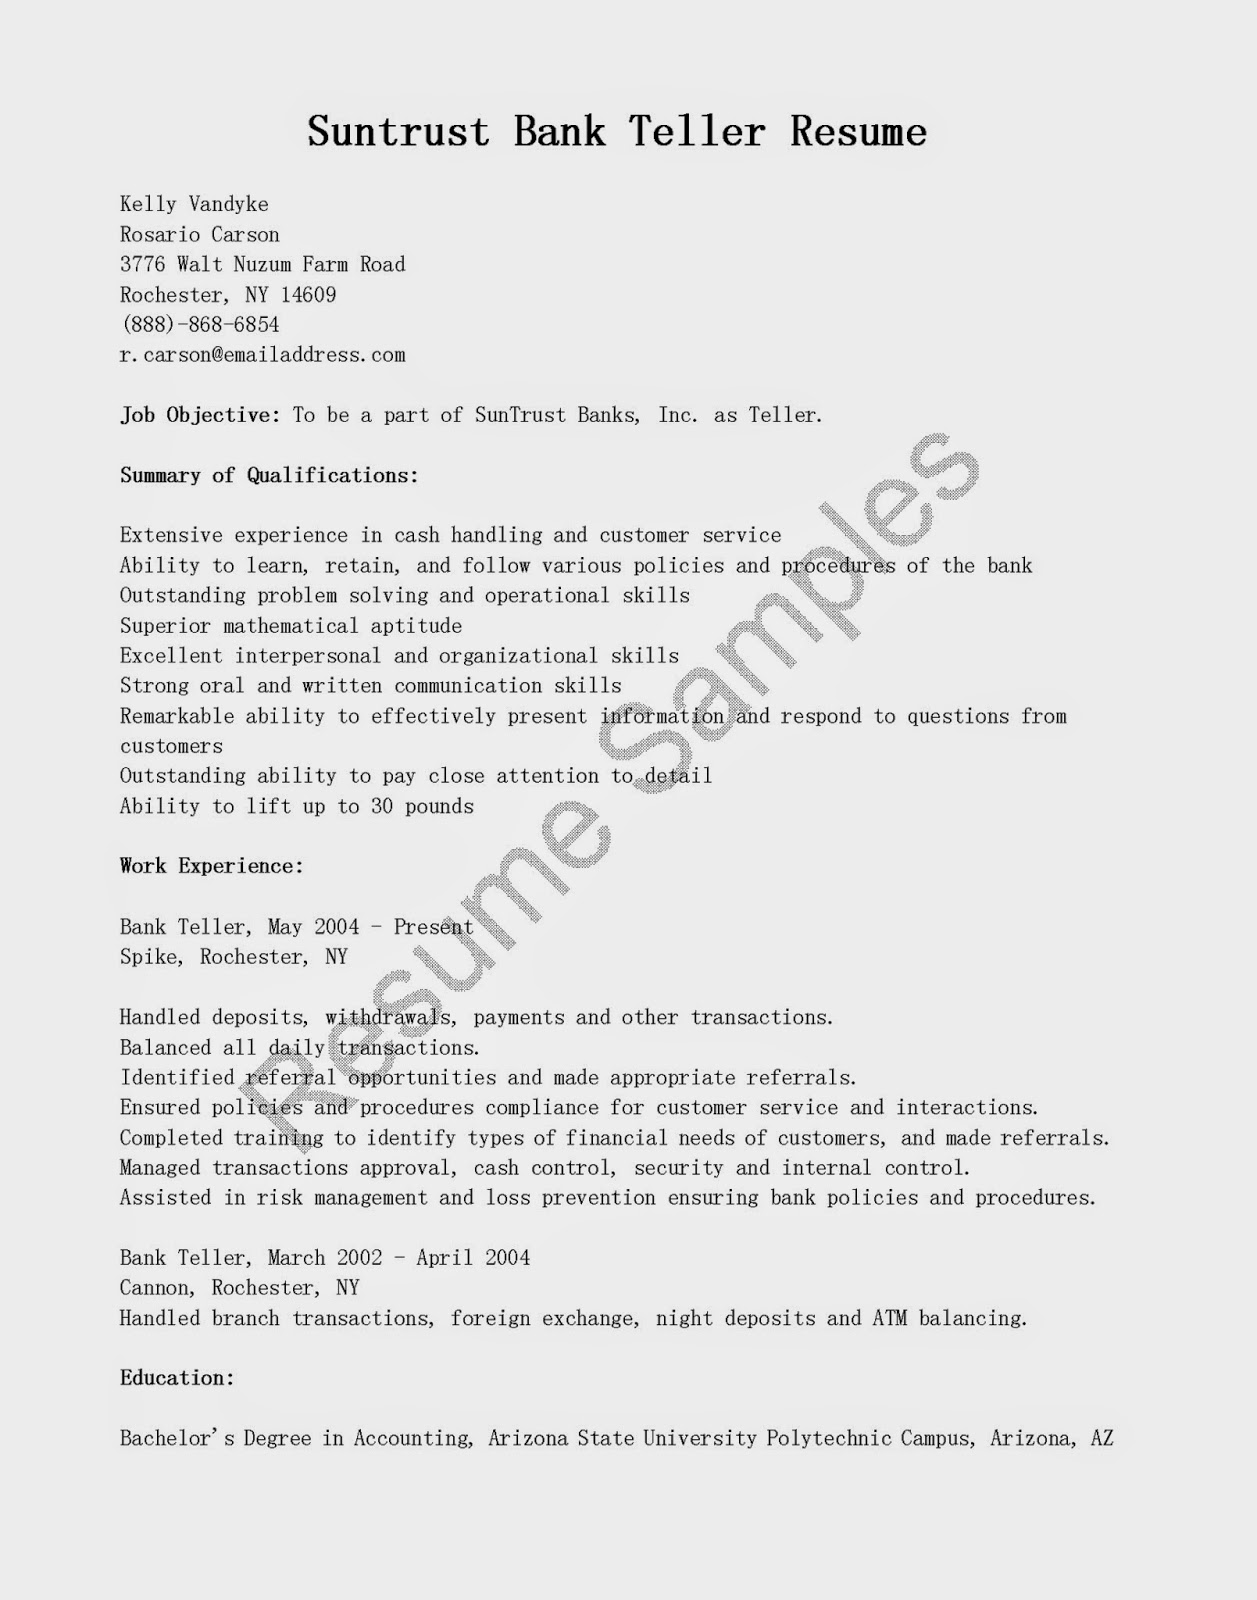 resume samples suntrust bank teller resume